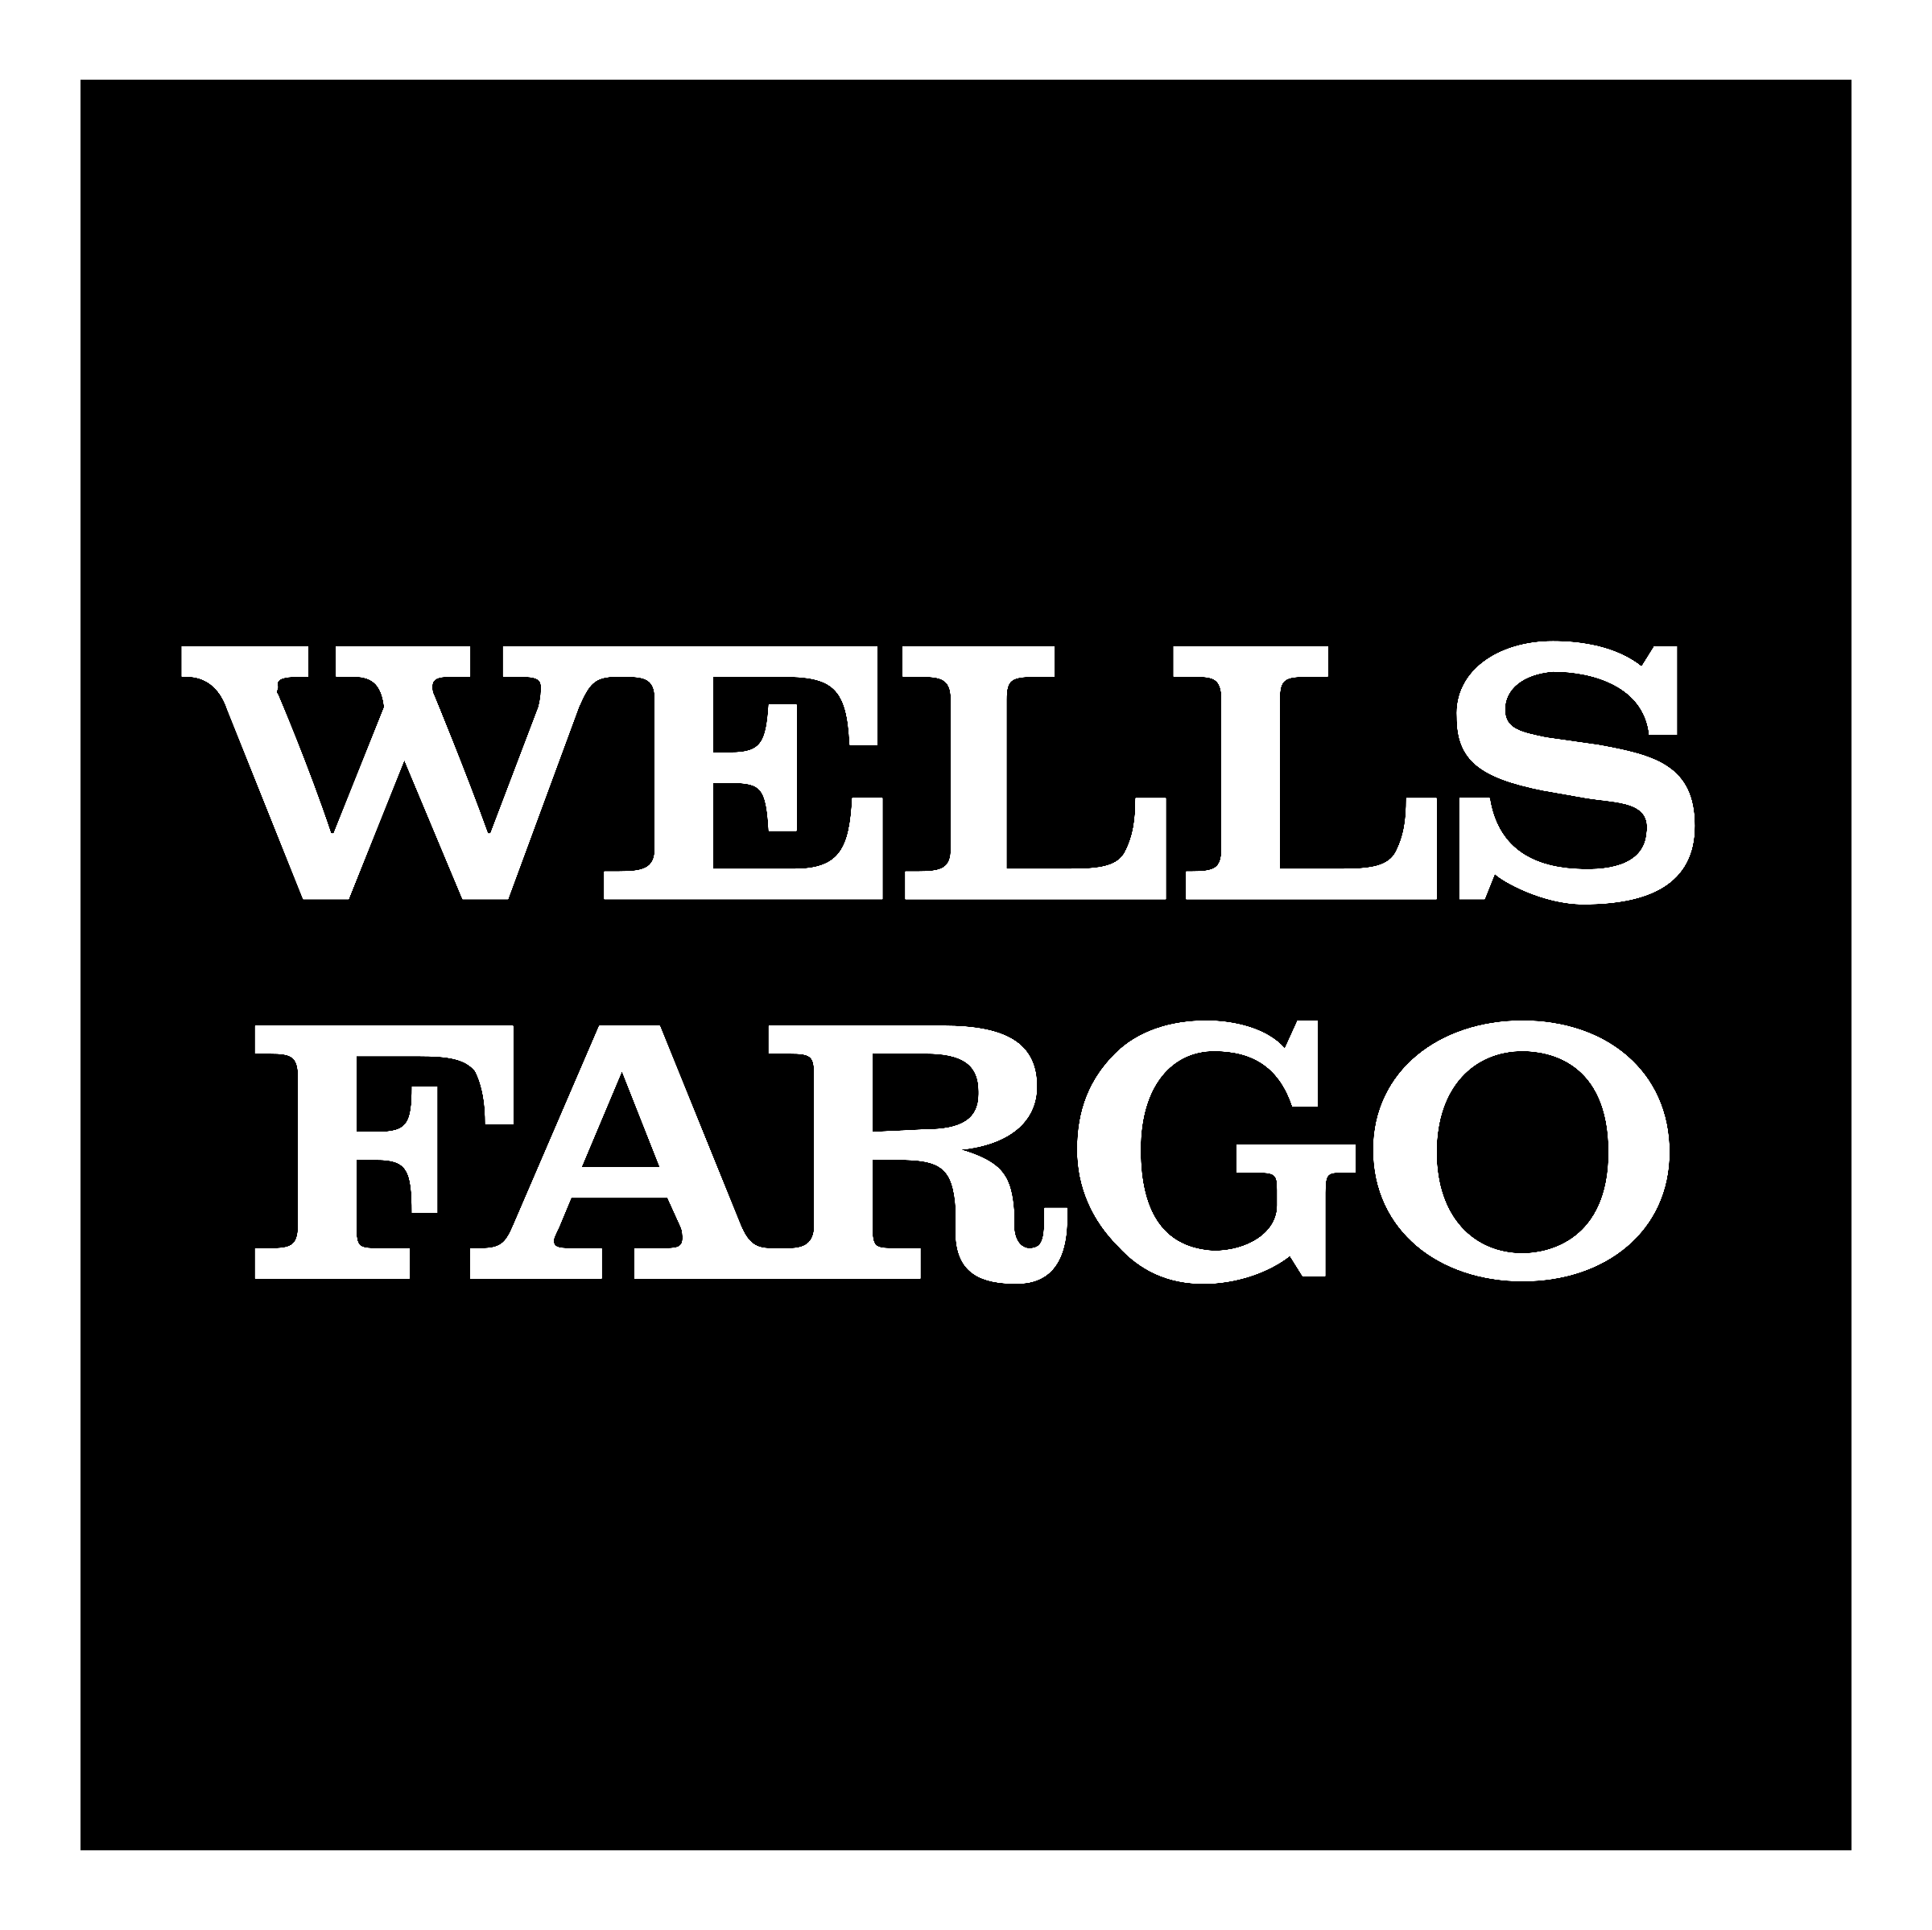 wells fargo logo png transparent   svg vector freebie supply Wells Fargo Old Logo wells fargo stagecoach logo vector